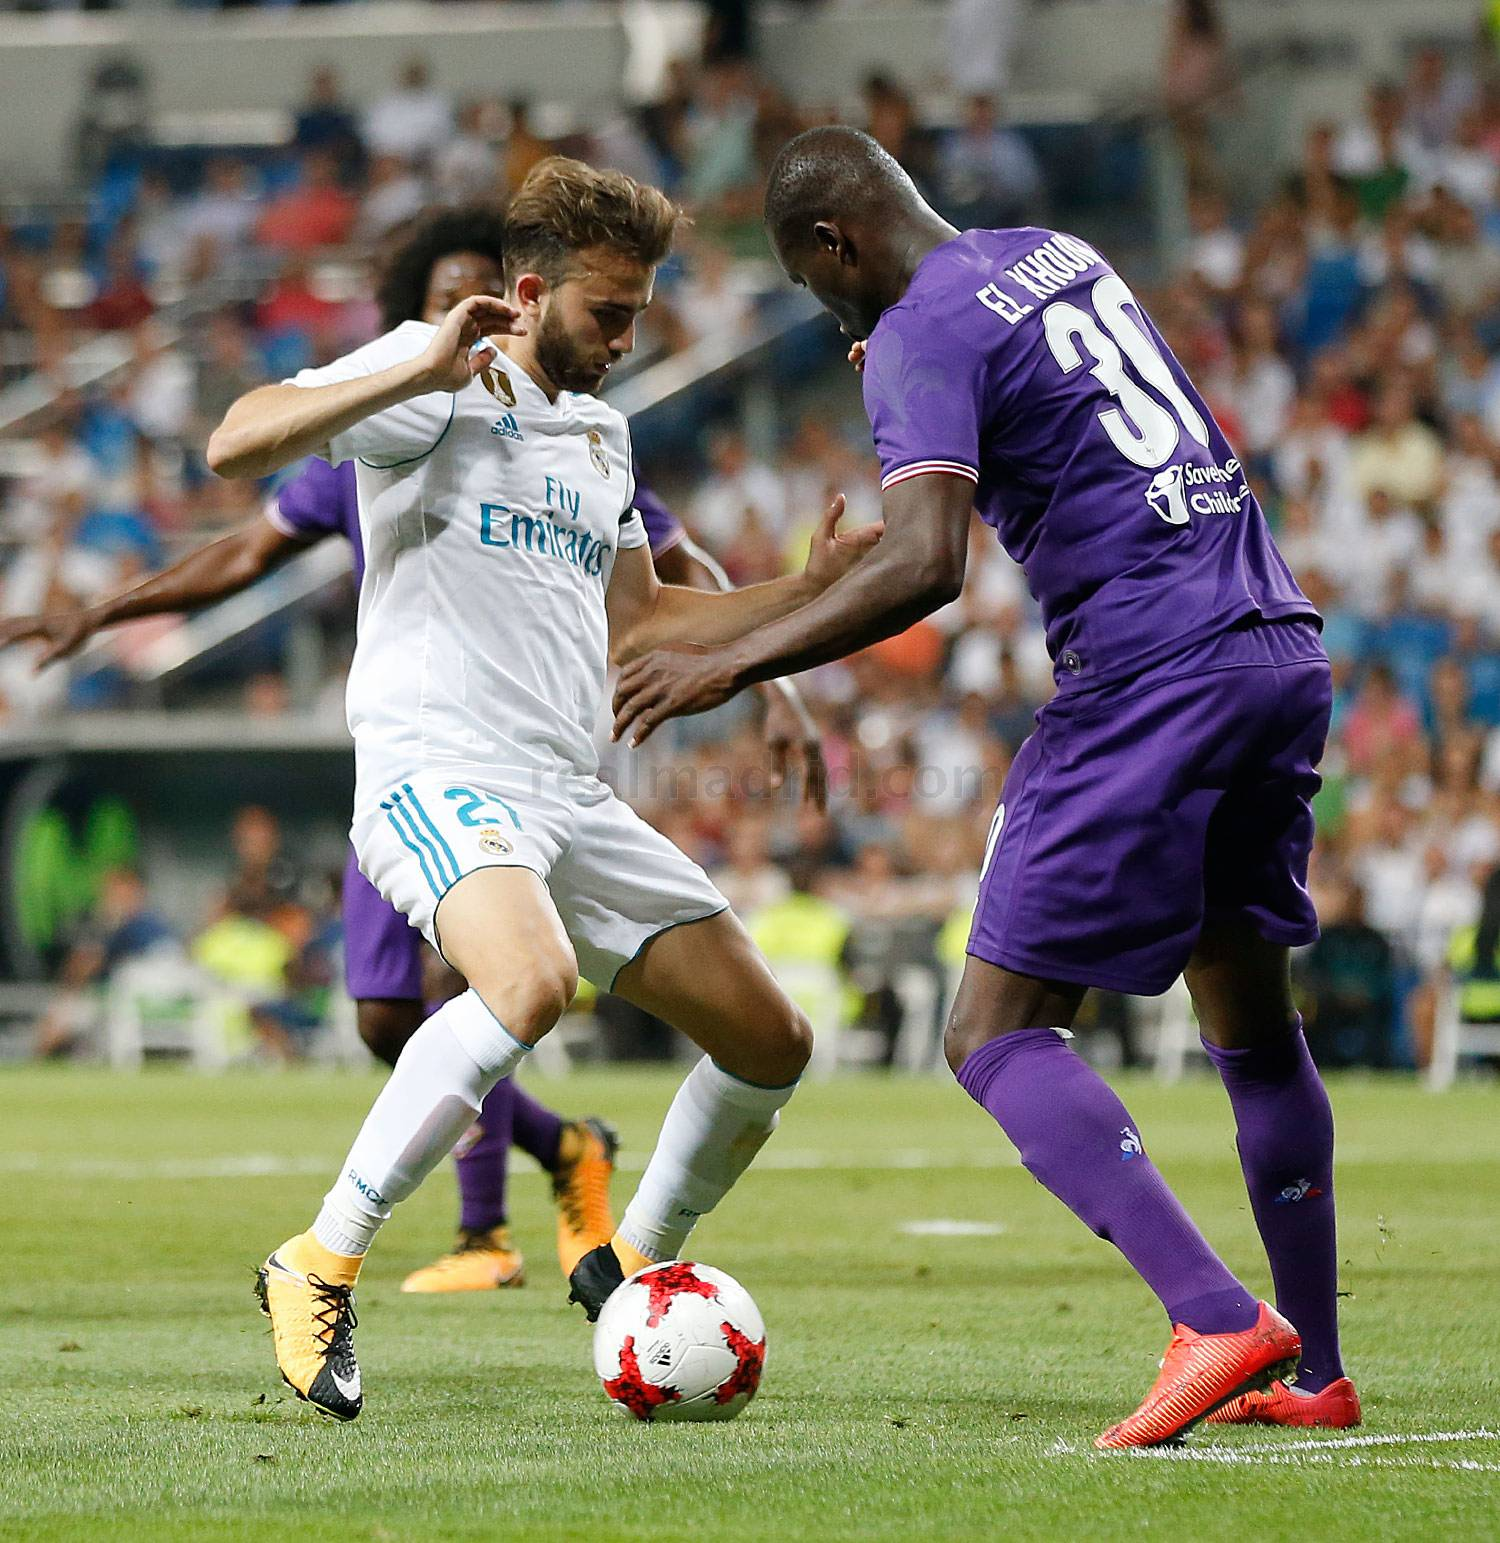 Real Madrid - Real Madrid - Fiorentina - 24-08-2017